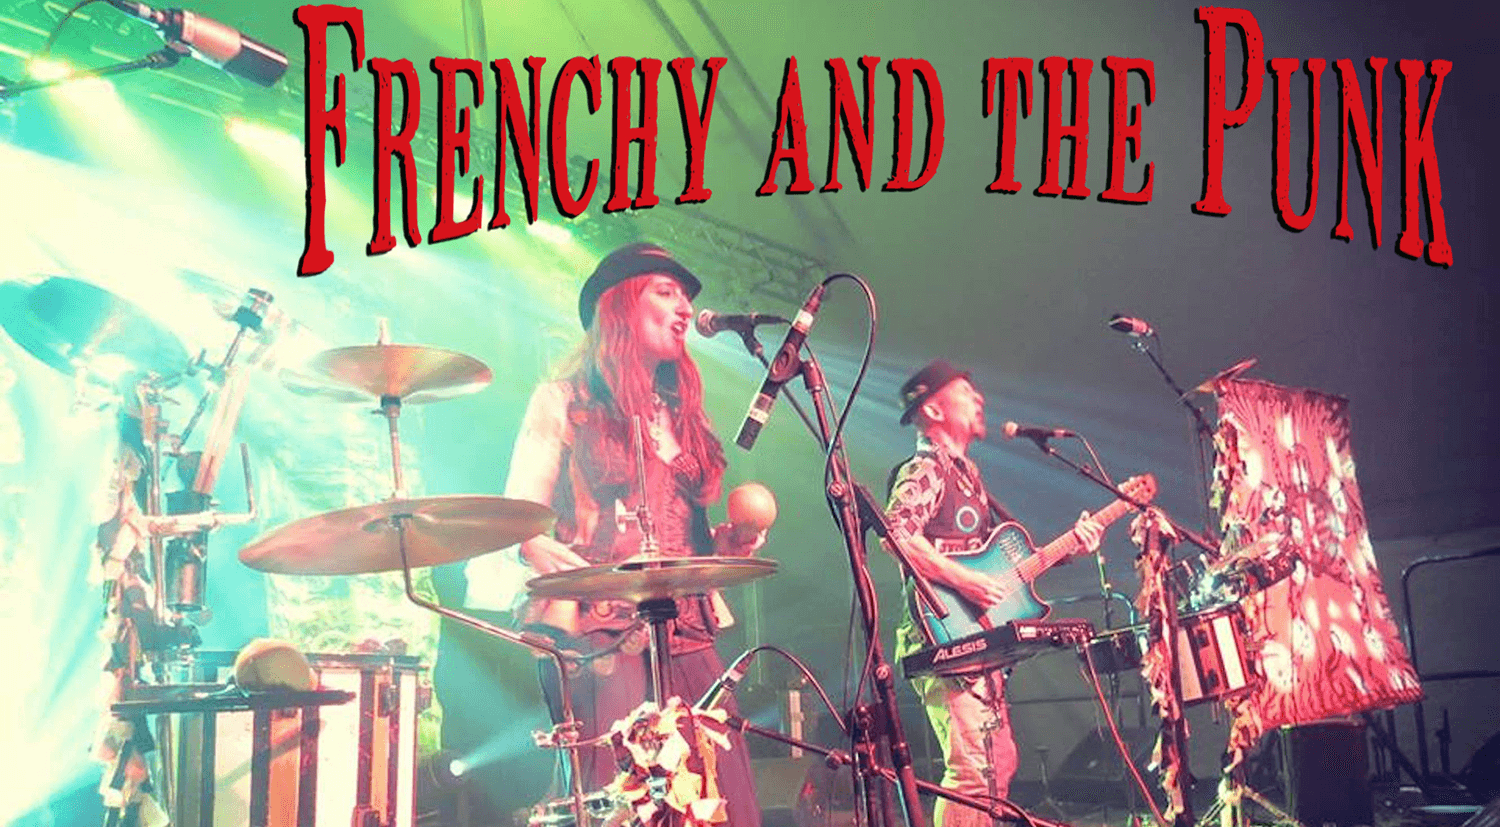 Frenchy and the Punk LivePic